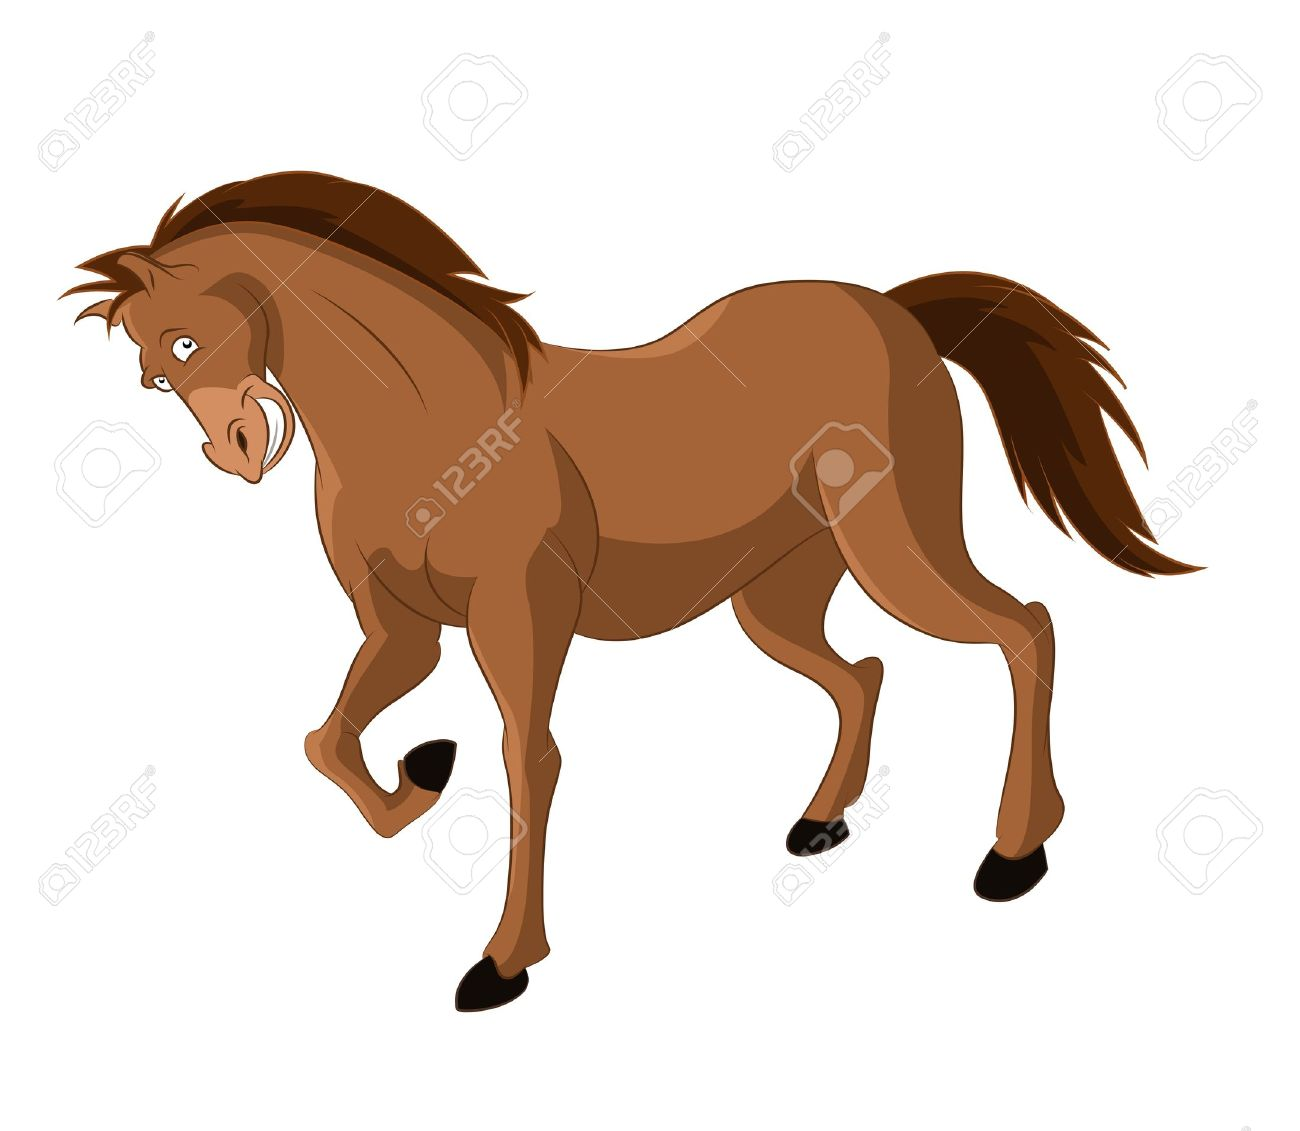 Image Of Funny Cartoon Smiling Horse Royalty Free Cliparts Vectors And Stock Illustration Image 21765563